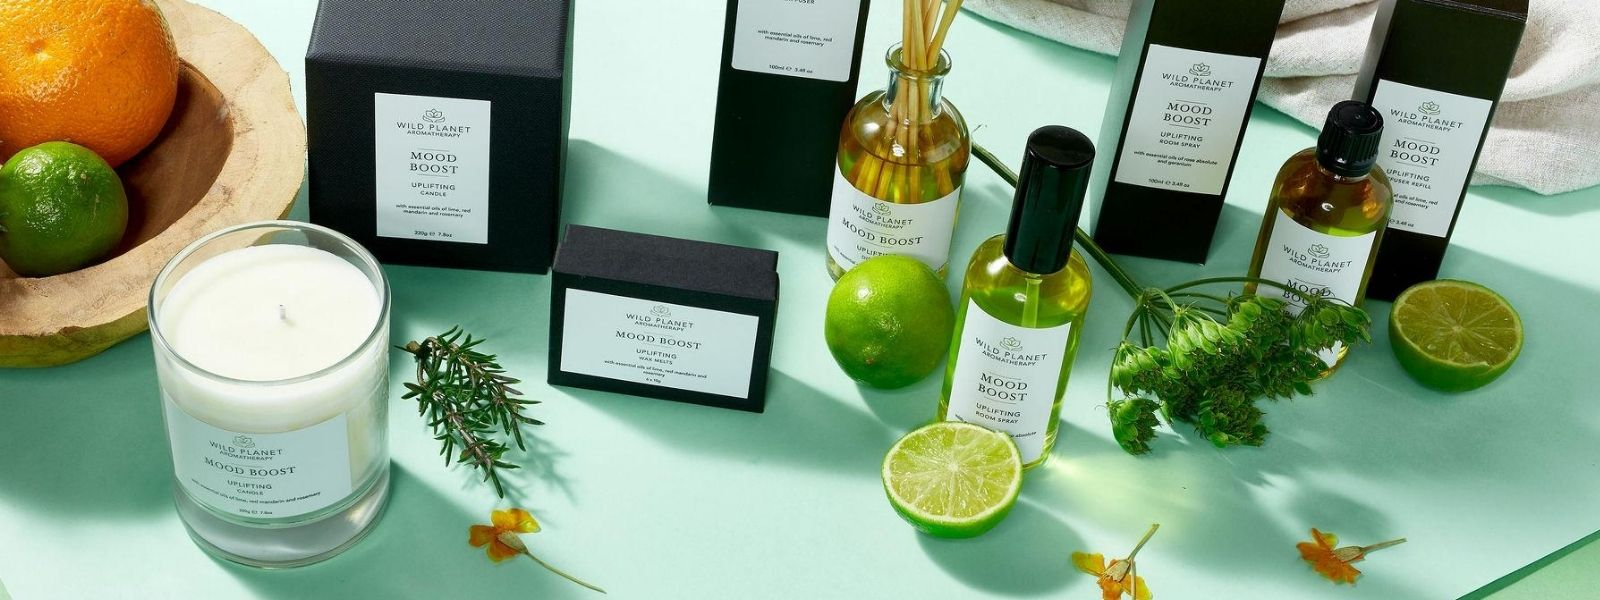 Mood Boost Home fragrance collection by Wild Planet Aromatherapy